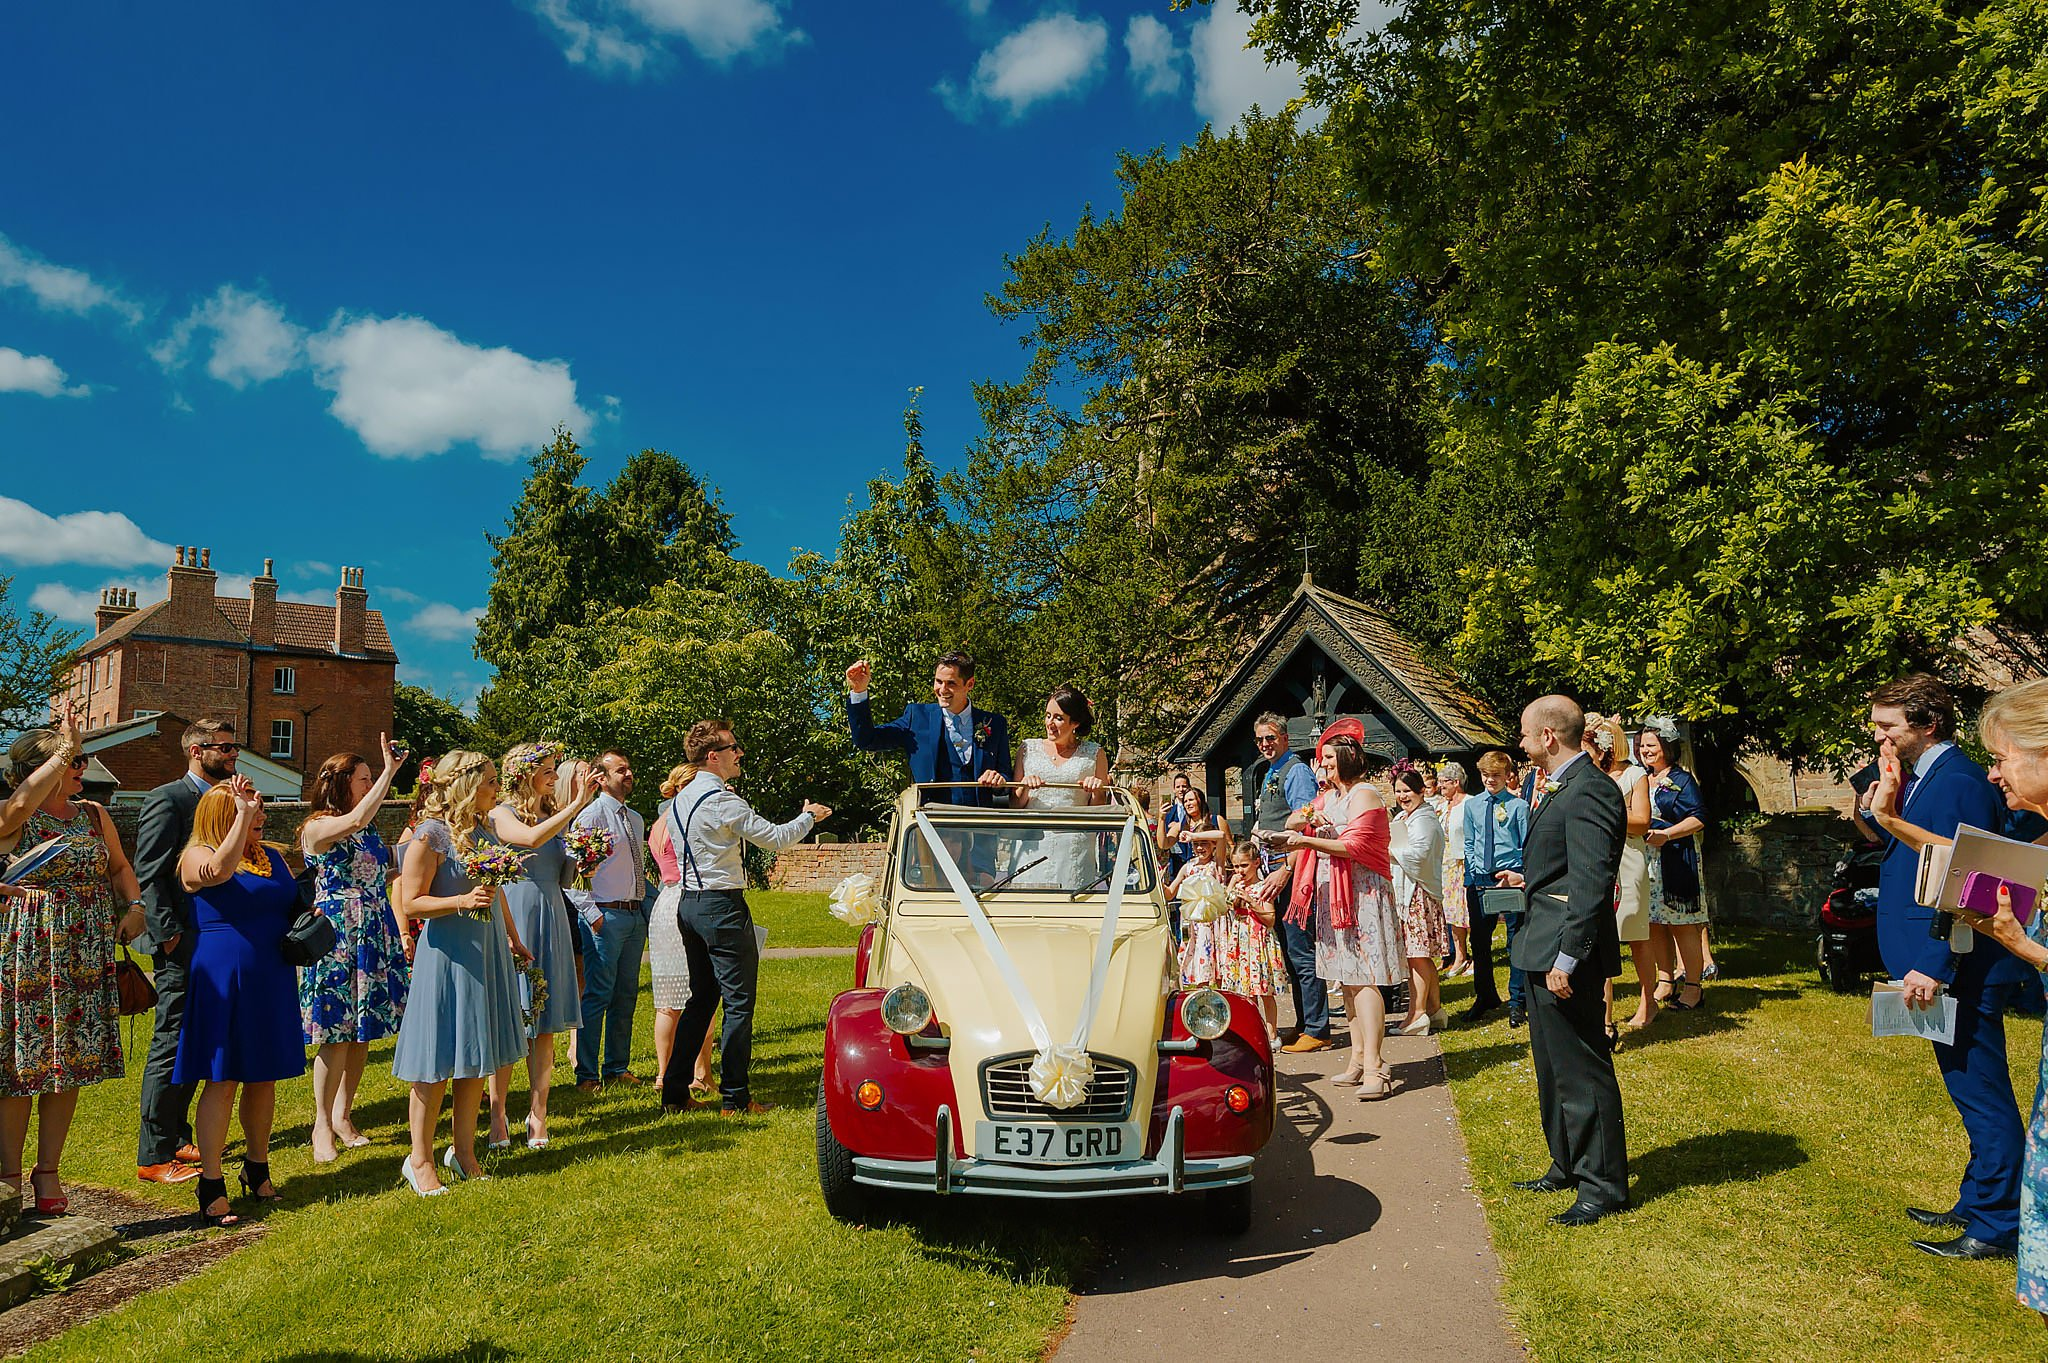 Wedding photography at Hellens Manor in Herefordshire, West Midlands | Shelley + Ian 38